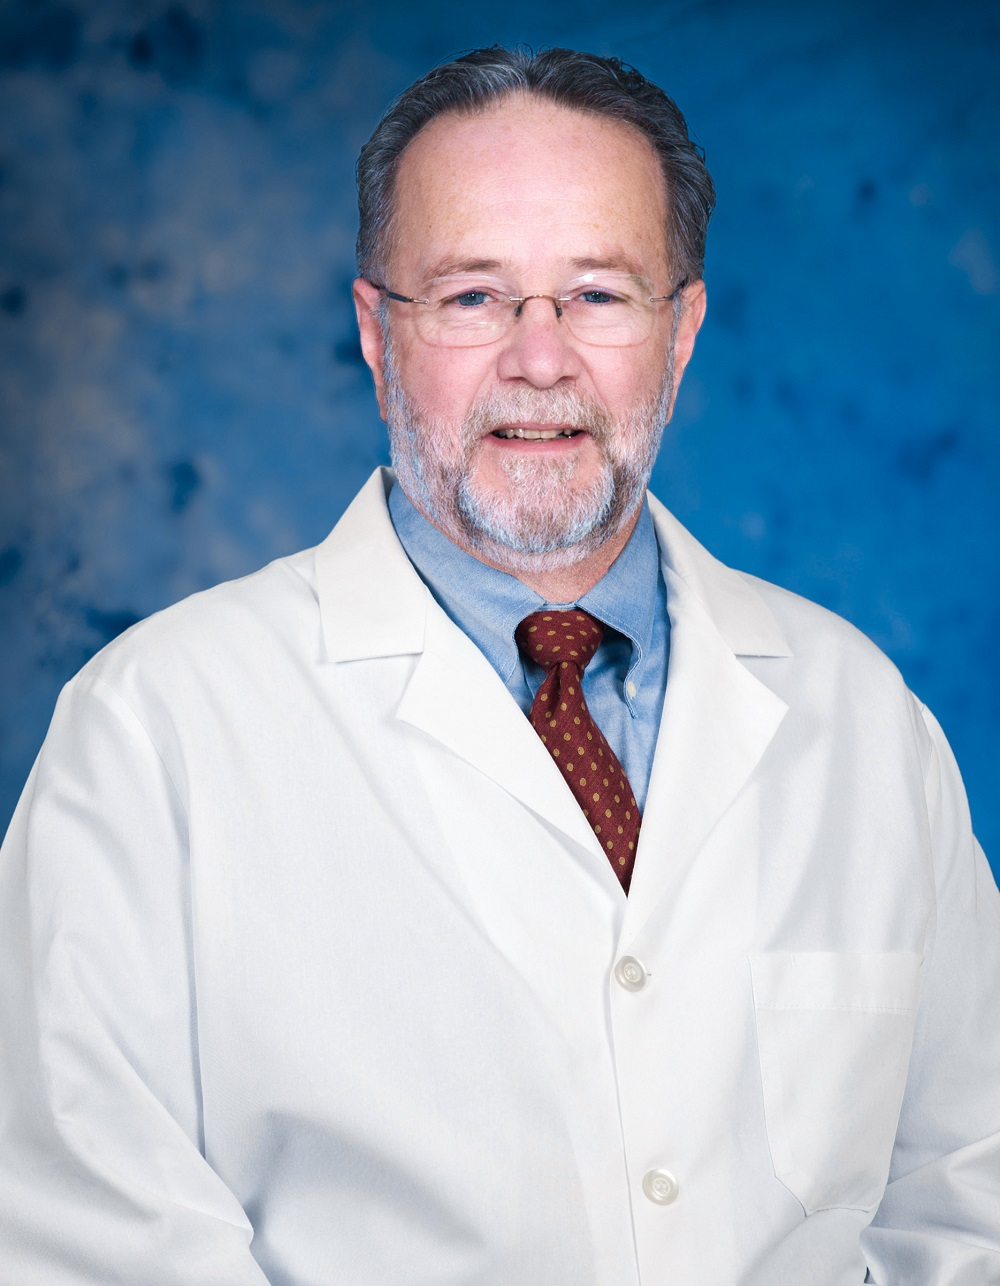 Michael Good, MD, gynecologic and urinary surgeon